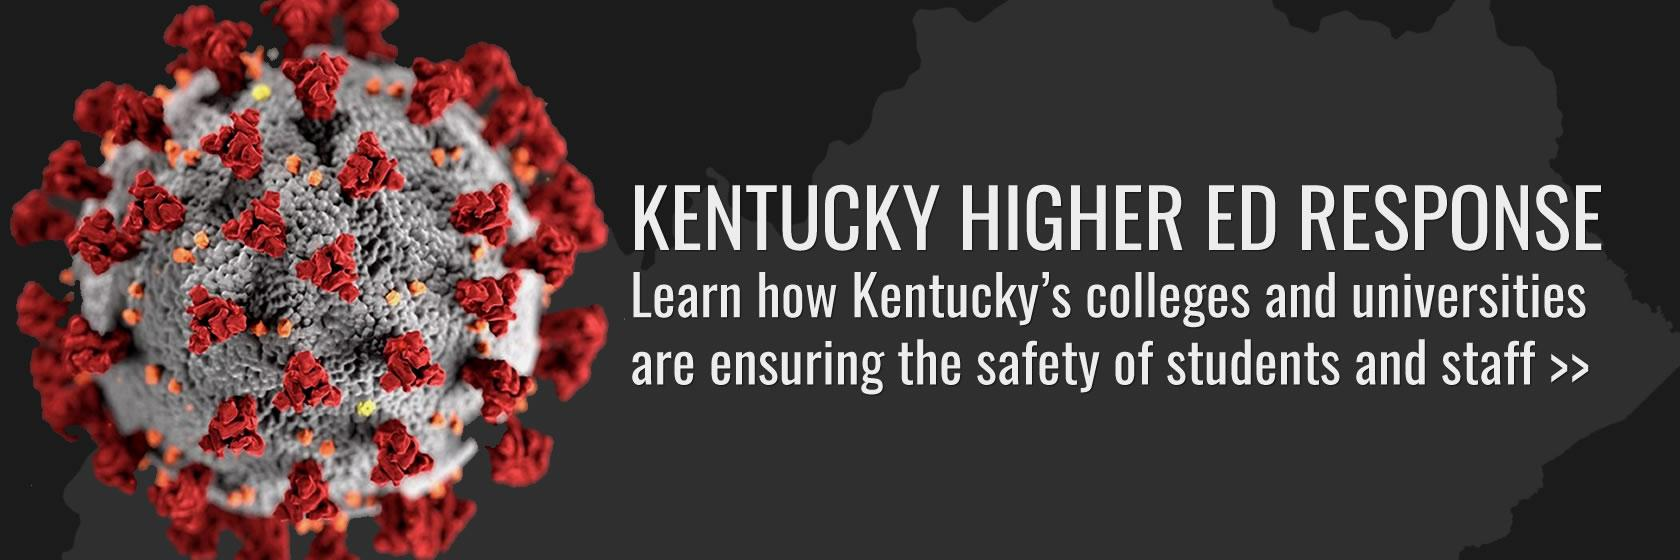 Learn how Kentucky's colleges and universities are handling COVID-19.